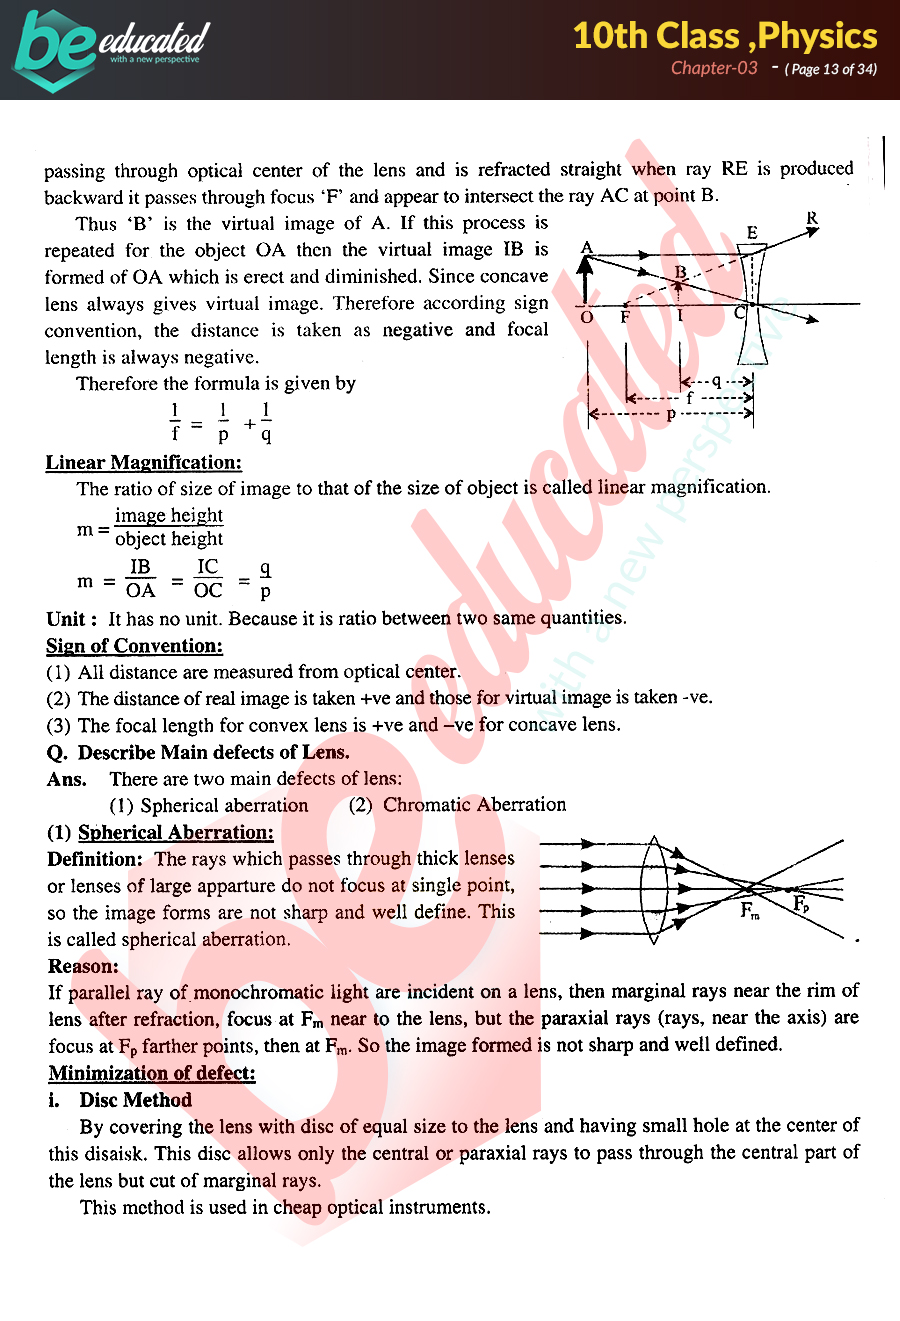 Chapter 3 Physics 10th Class Notes - Matric Part 2 Notes